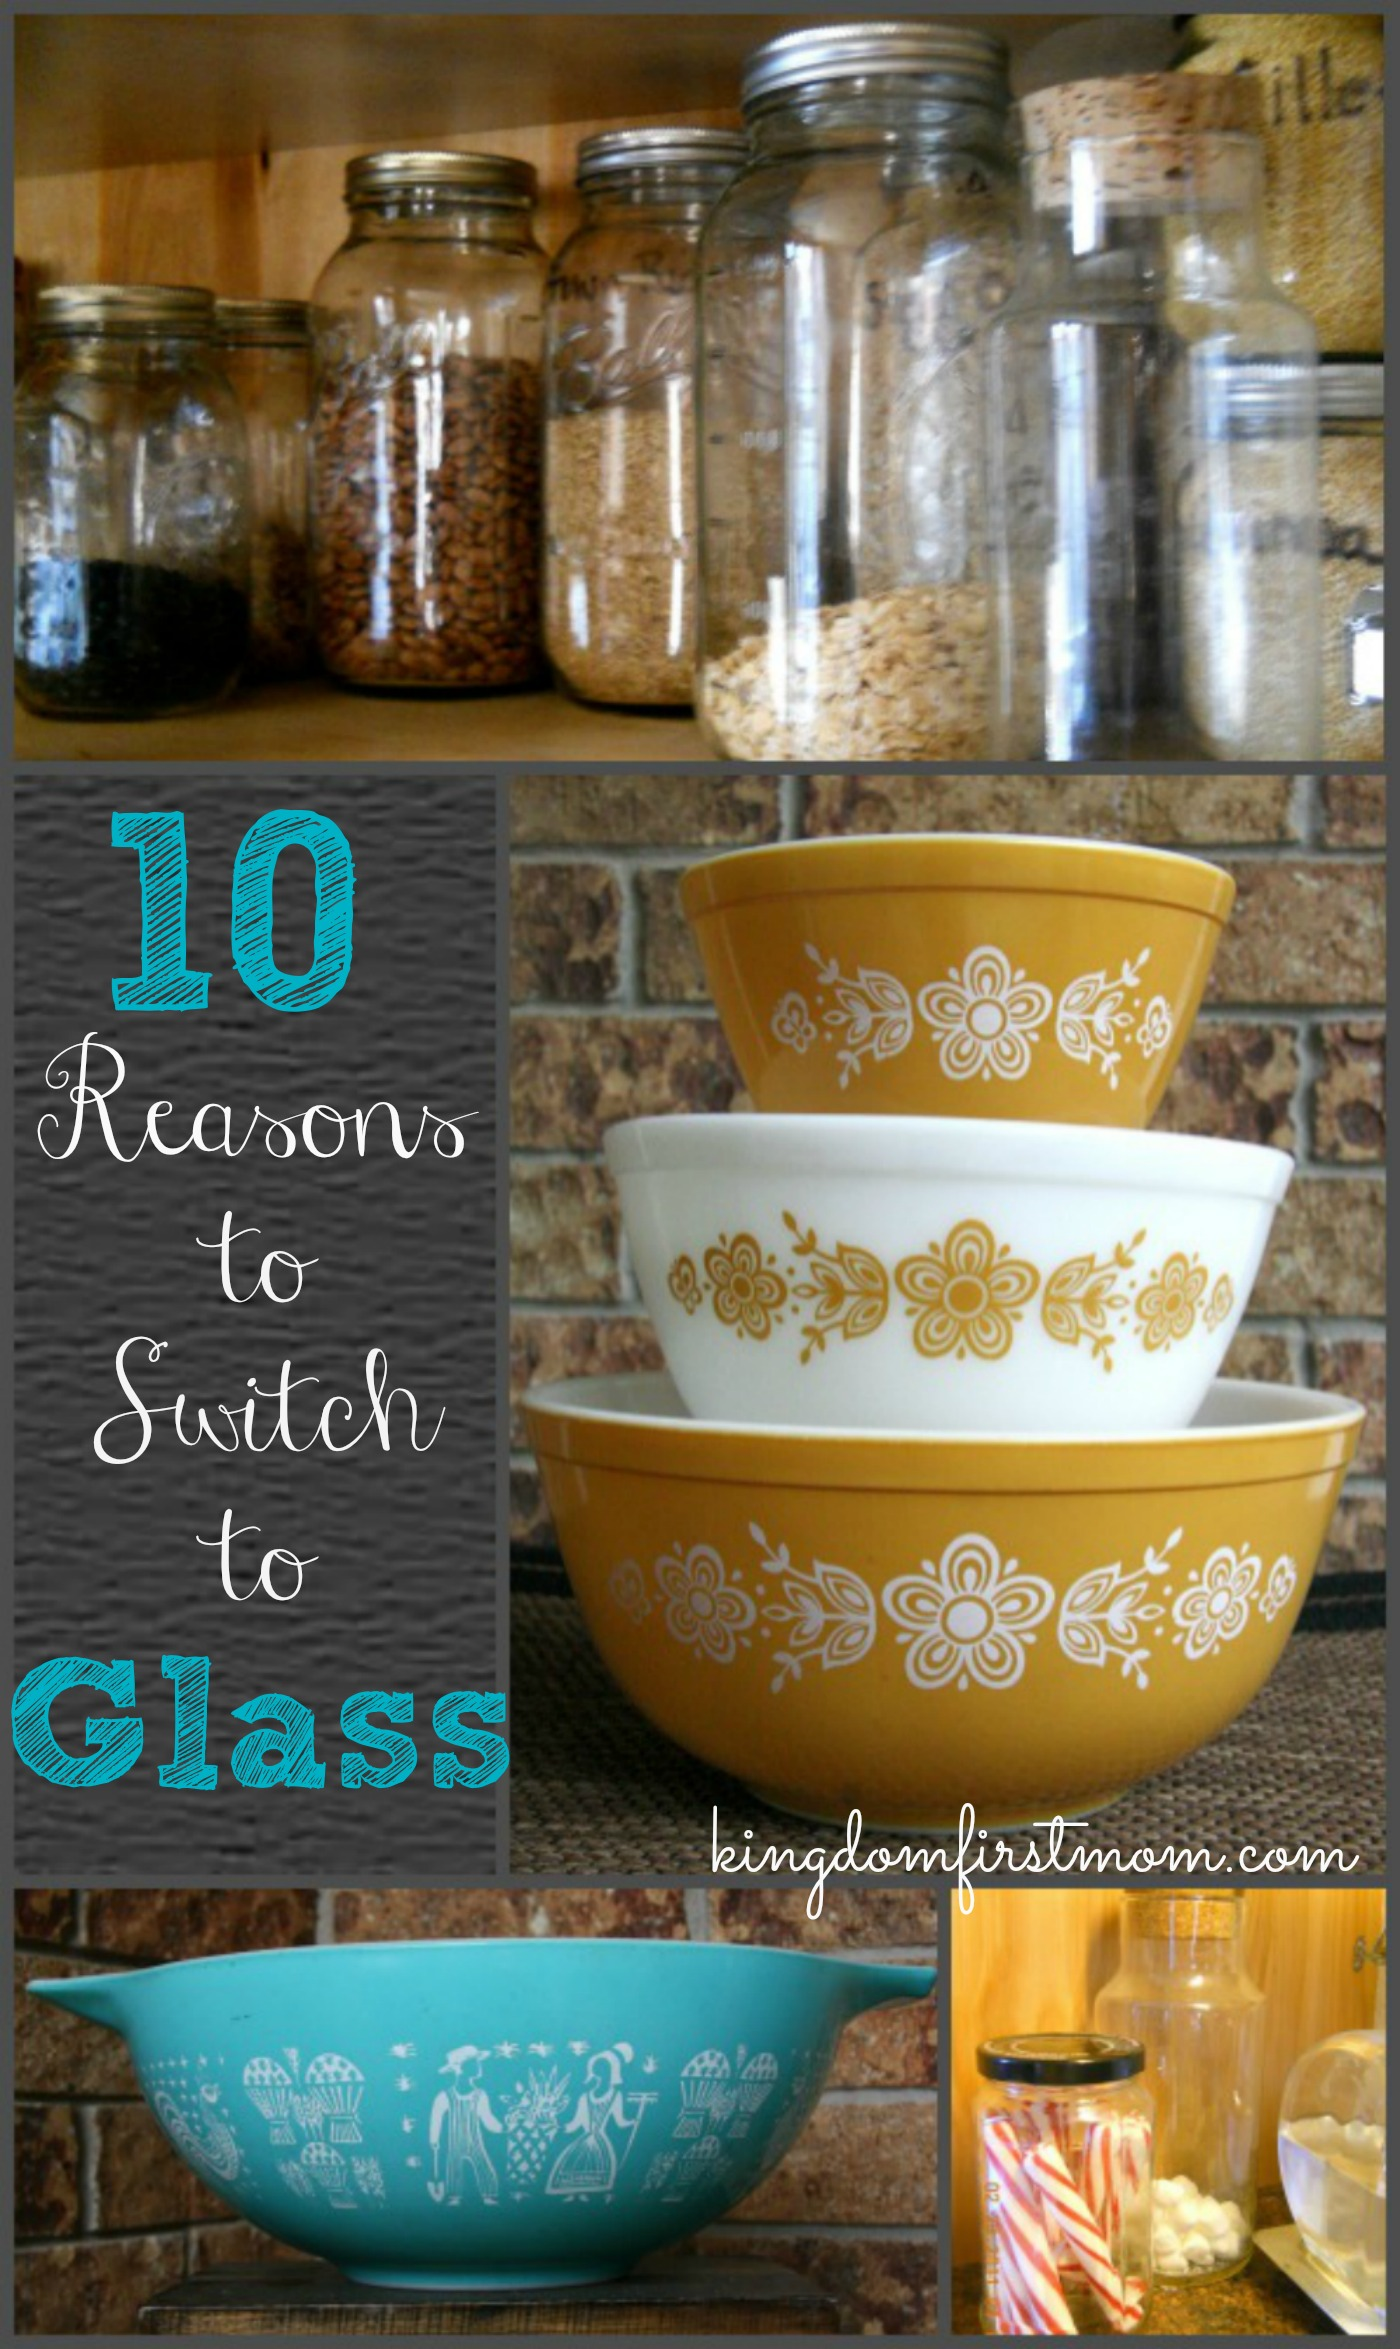 10-Reasons-to-Switch-to-Glass